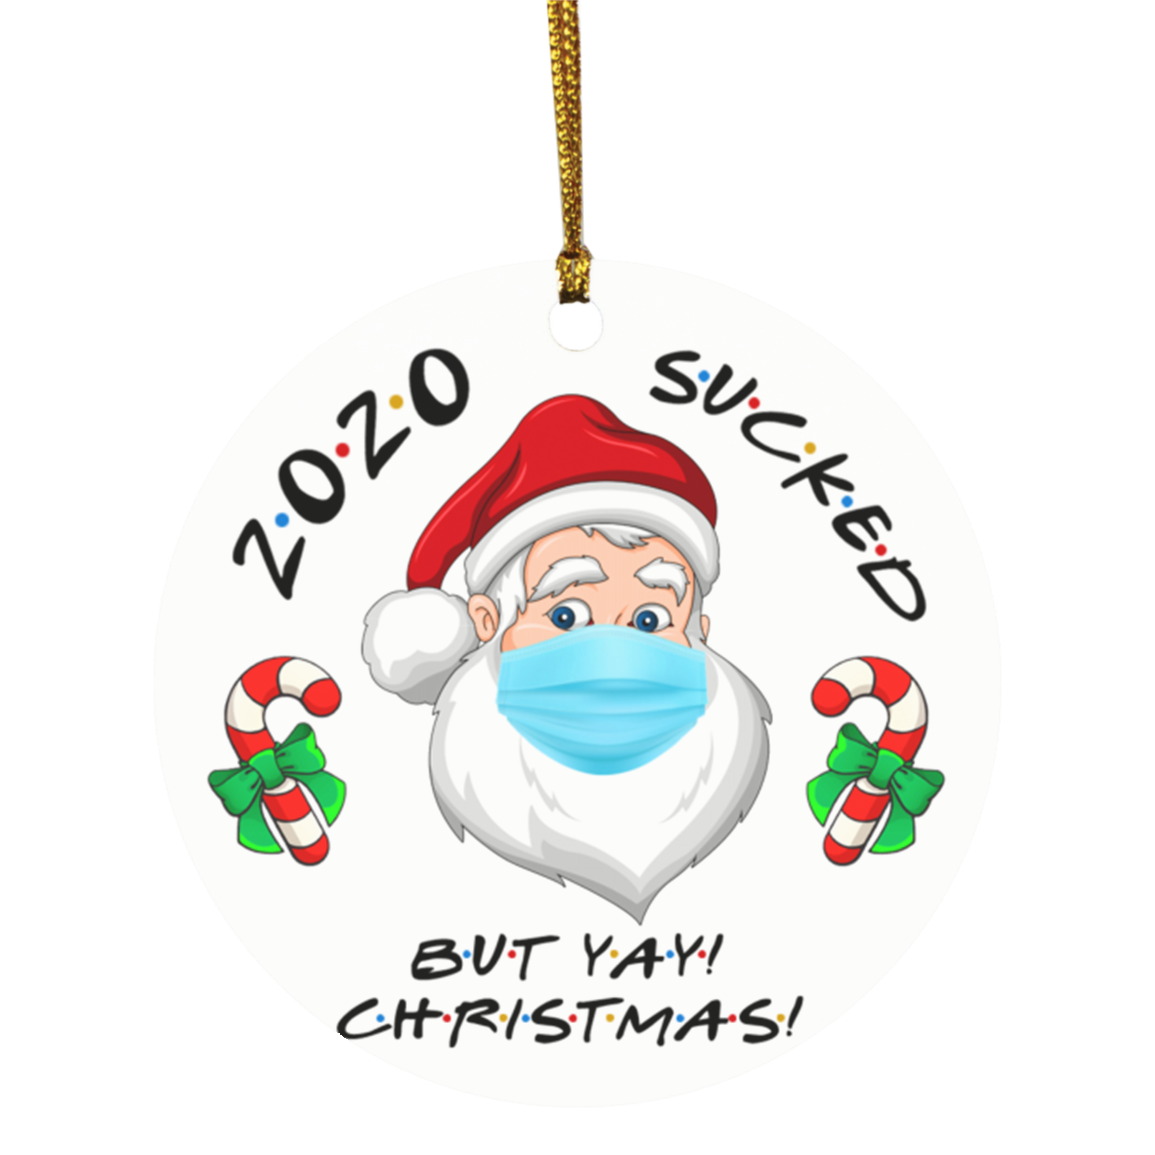 2020 Quarantined Christmas Gifts Funny Santa Saying 2020 Sucked But Yay Christmas Decorative Christmas Holiday Flat Circle Ornament Keepsake Cubebik Check out our santa meme selection for the very best in unique or custom, handmade pieces from our shops. funny santa saying 2020 sucked but yay christmas decorative christmas holiday flat circle ornament keepsake